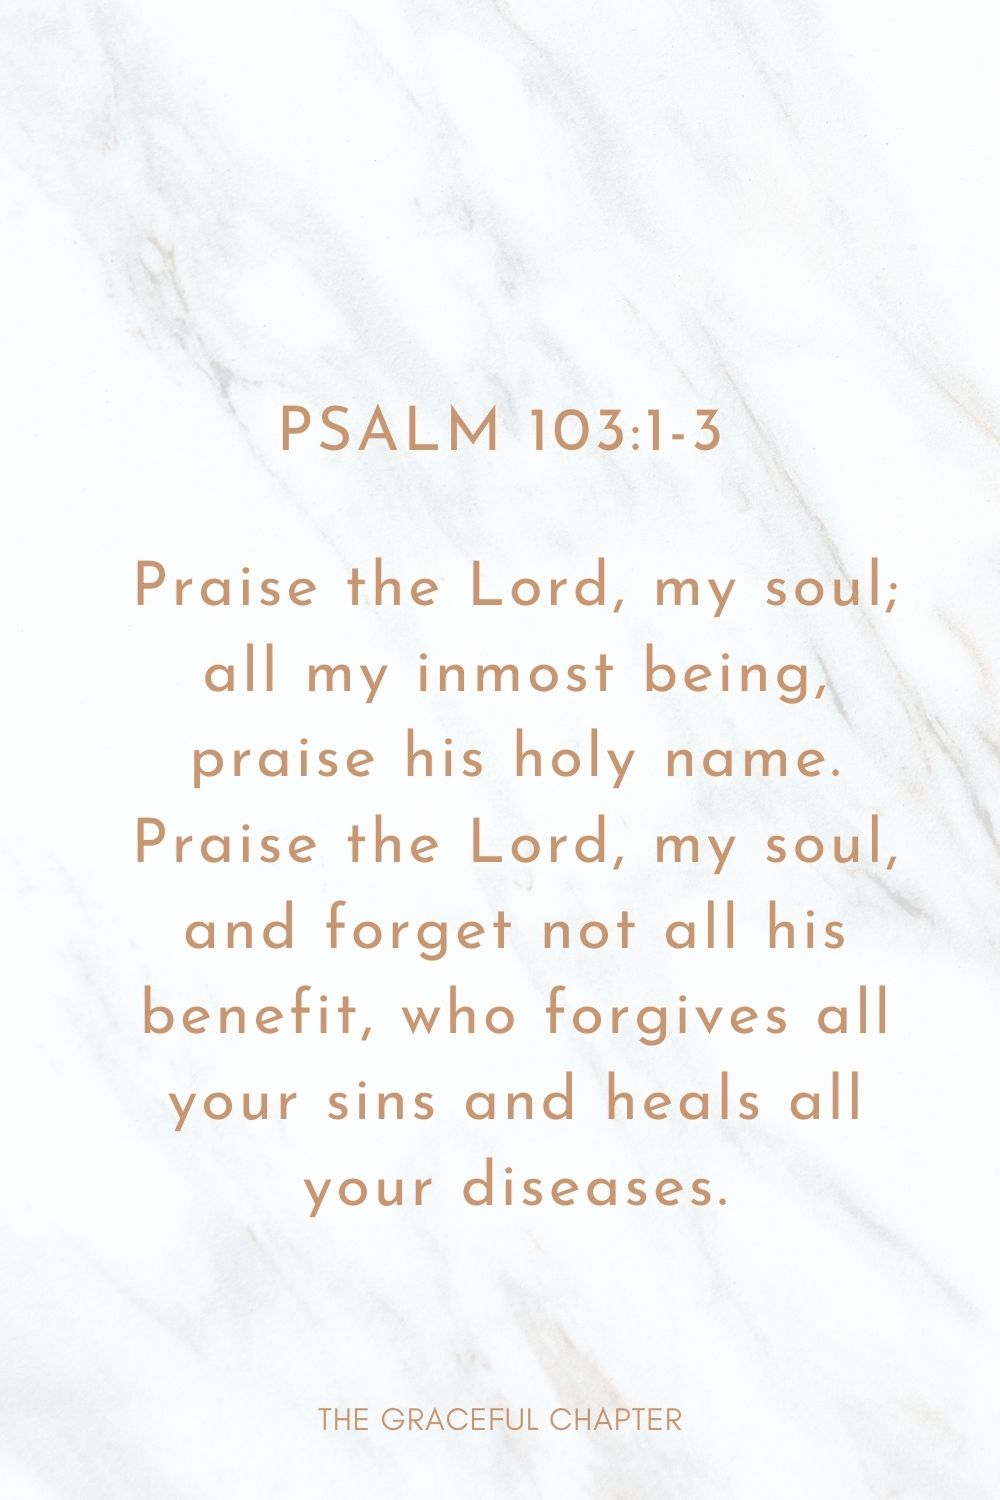 Praise the Lord, my soul; all my inmost being, praise his holy name. Praise the Lord, my soul, and forget not all his benefit, who forgives all your sins and heals all your diseases. Psalm 103:1-3